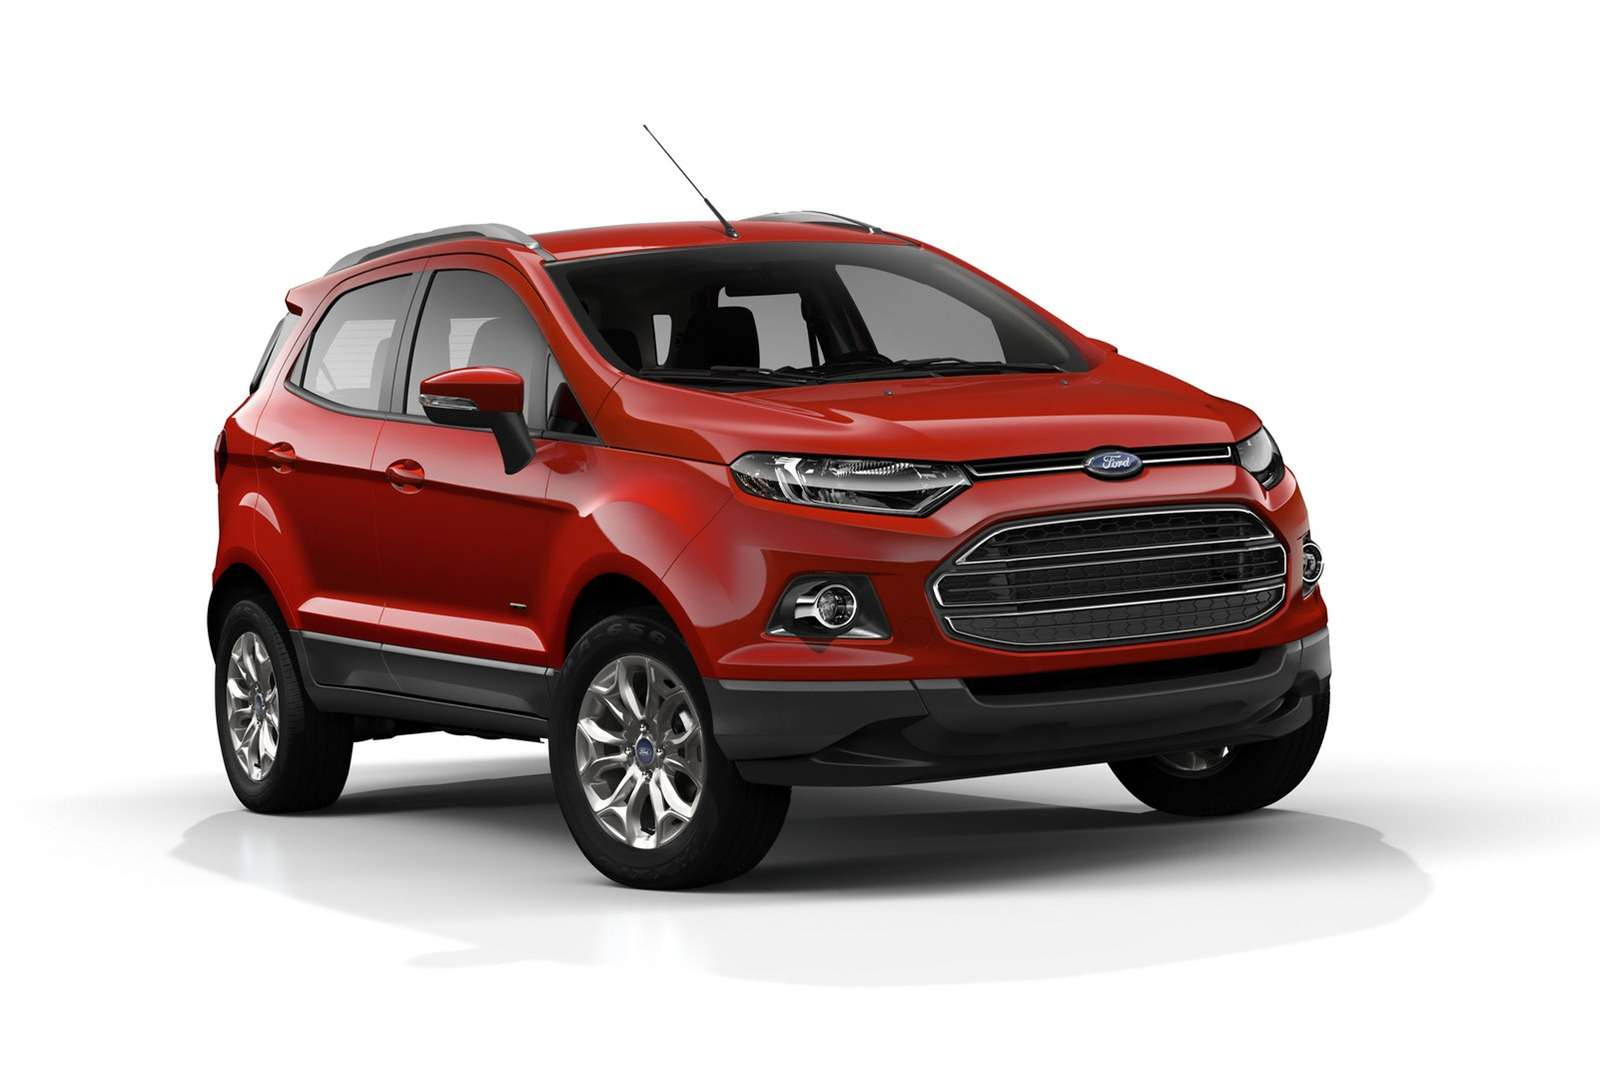 Ford Ecosport Specification Price